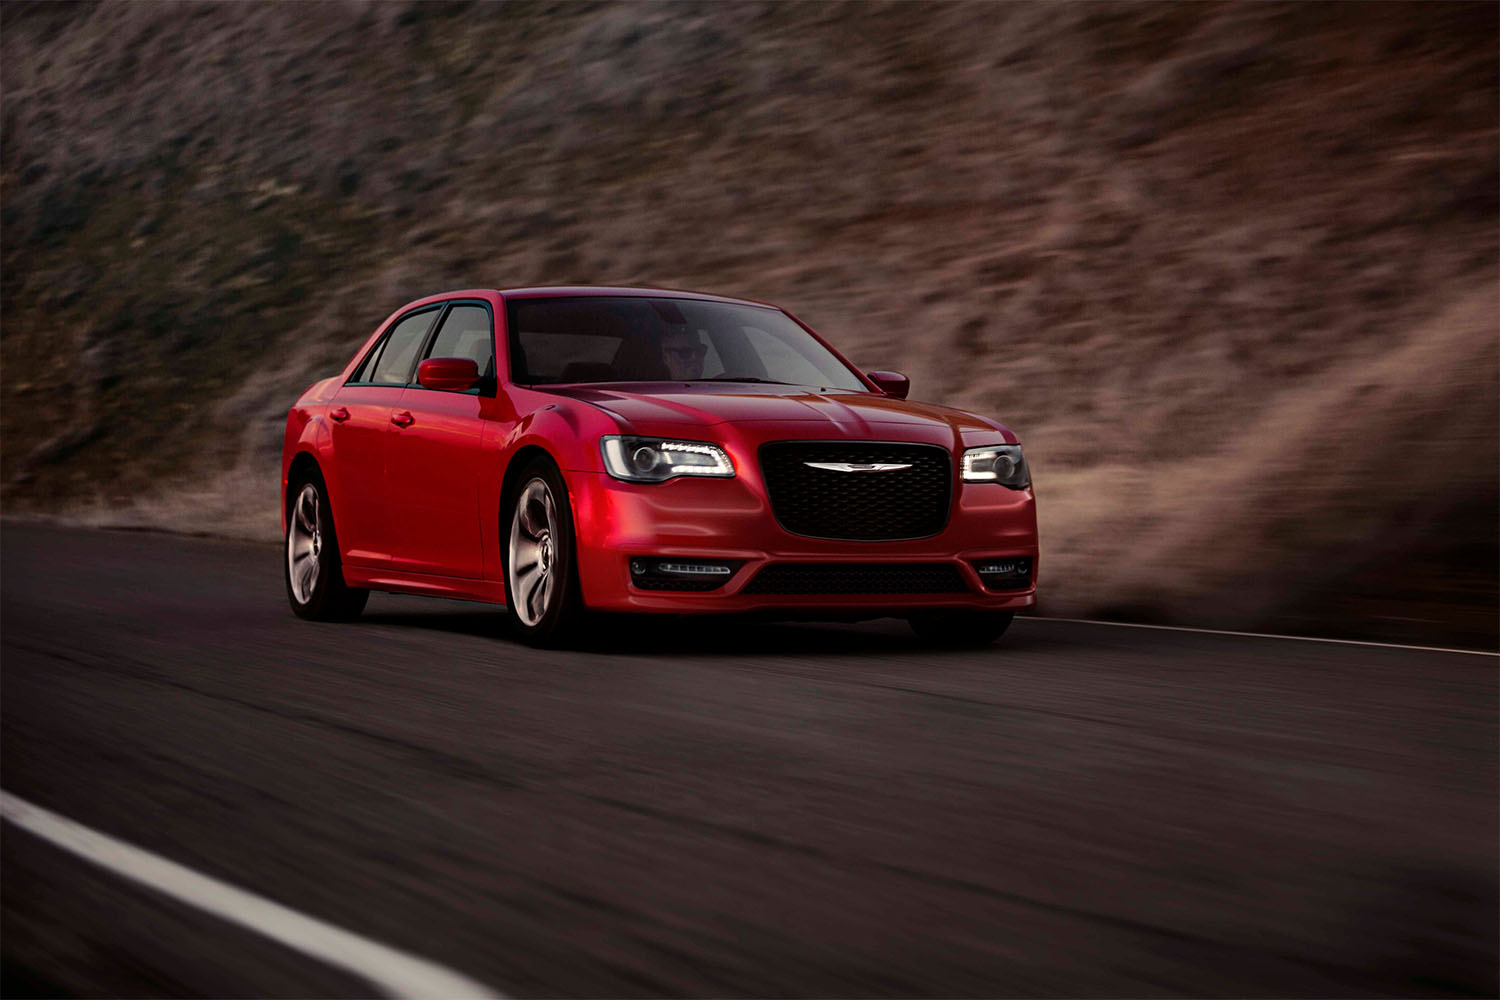 Chryslers available in Elyria, OH at Sliman's Sales & Service (Elyria, OH)